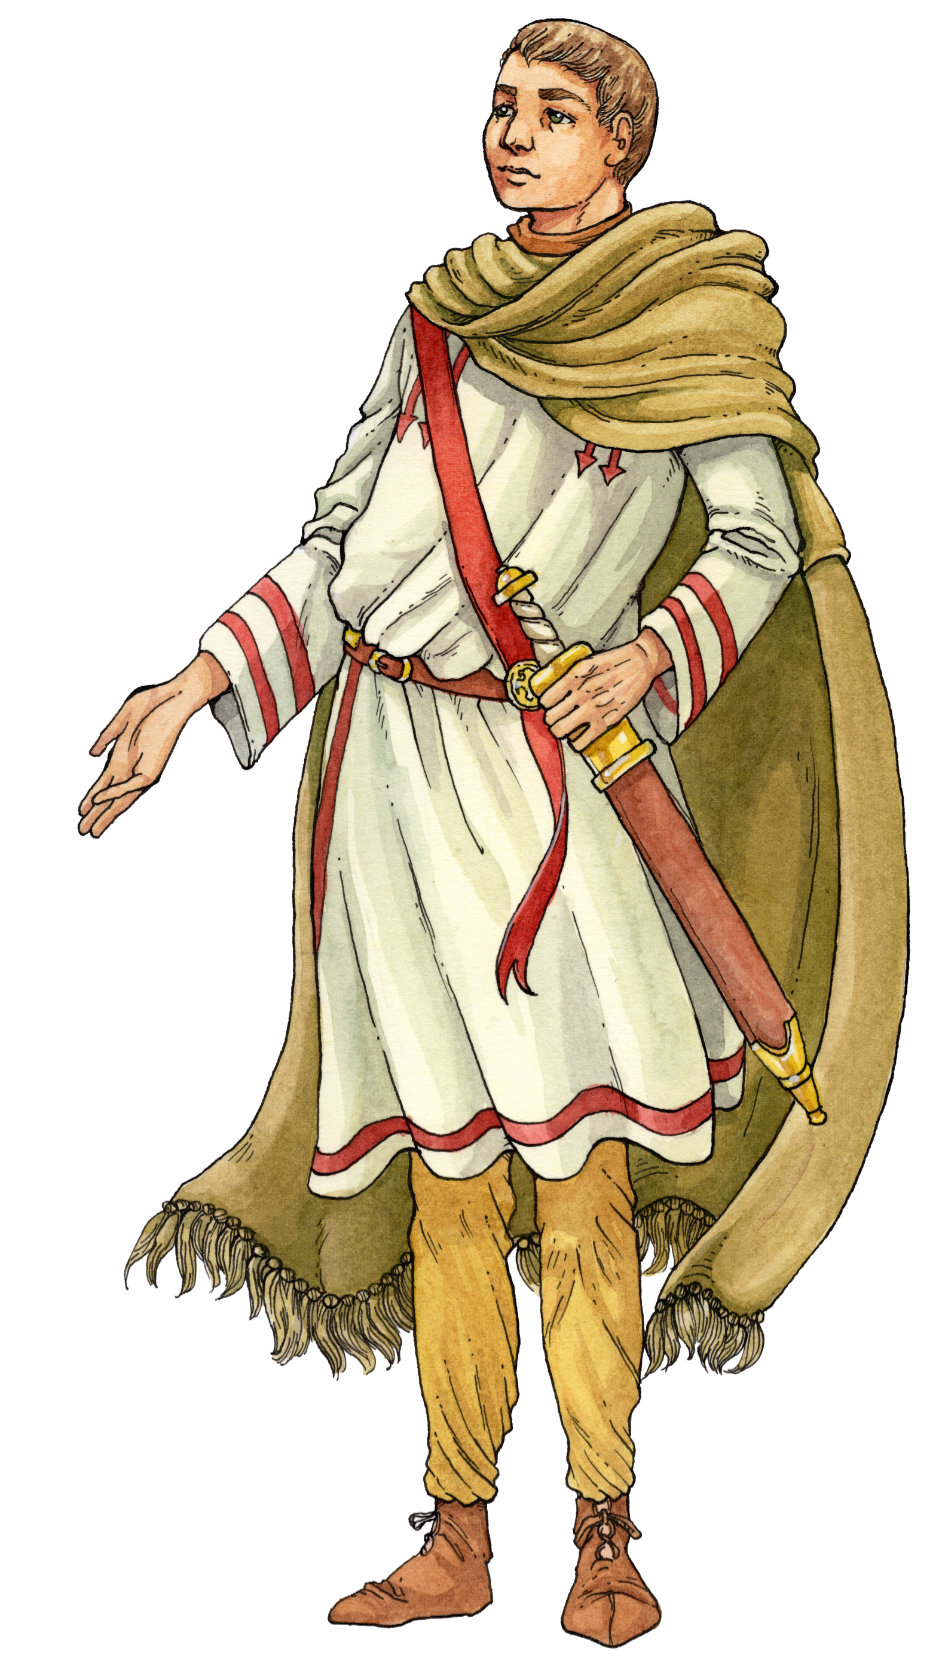 Illustration eines Römers für das Stadtmuseum in Bad Dürkheim. An illustration of a Roman man for the Town's Museum in Bad Dürkheim.